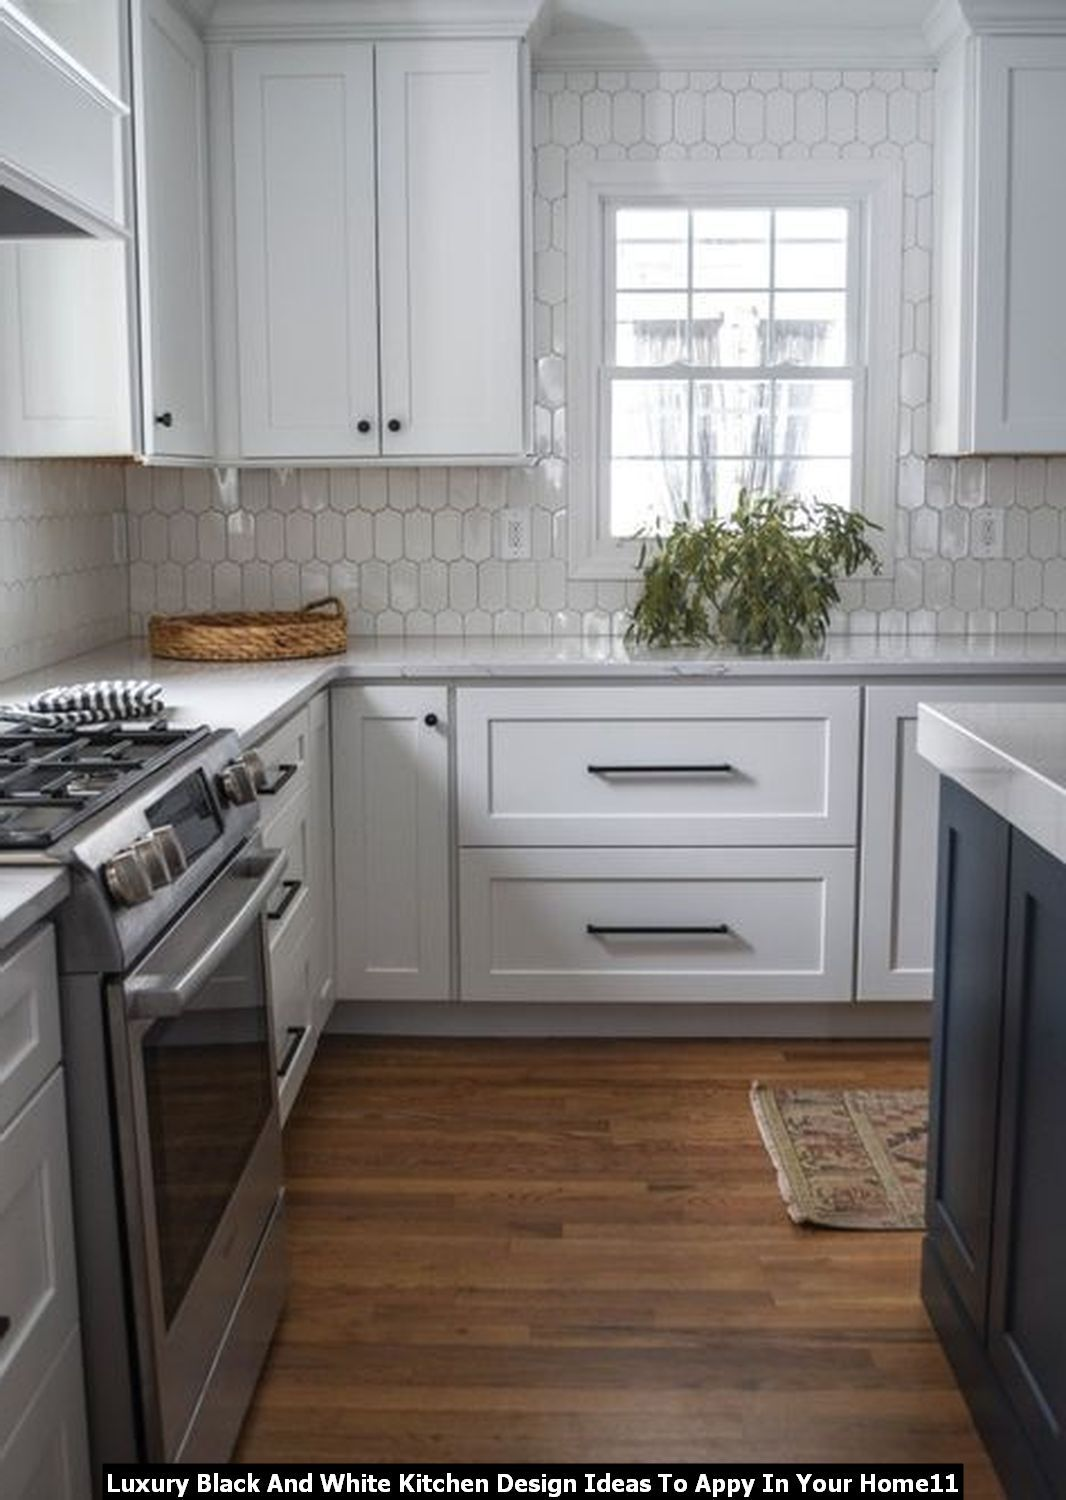 Adorable Luxury Black And White Kitchen Design Ideas To Appy In Your Home In 2020 White Kitchen Design Kitchen Design Cottage Style Kitchen